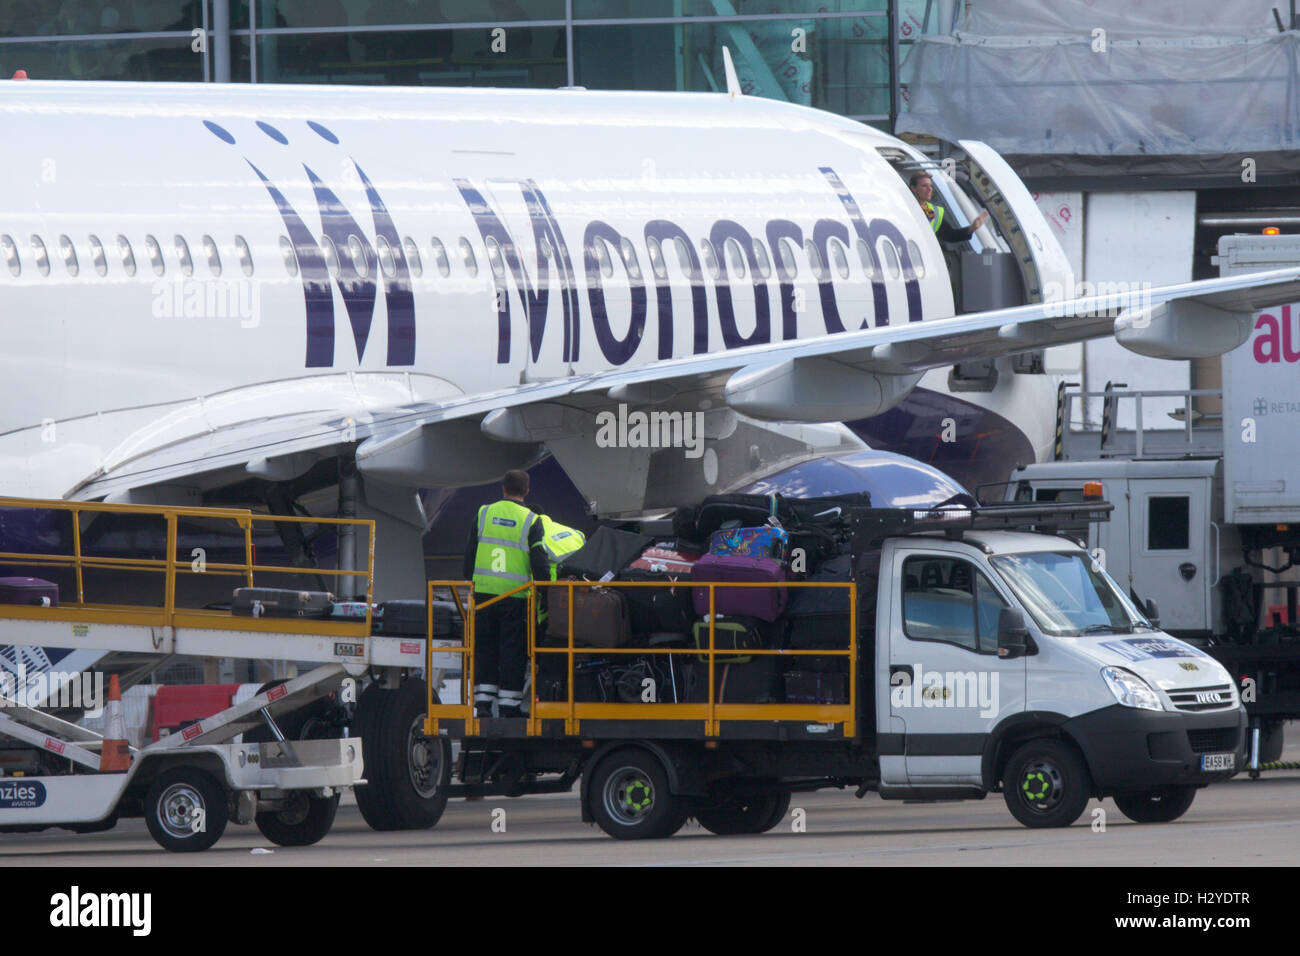 Monarch Airlines plane at Luton Airport on Friday afternoon Sept 30th - Stock Image